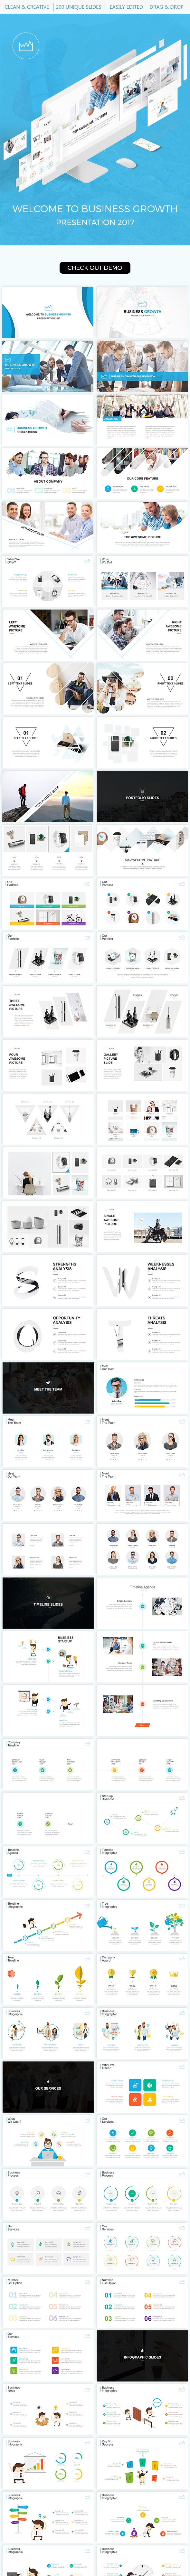 Business Growth Powerpoint Template - PowerPoint Templates Presentation Templates